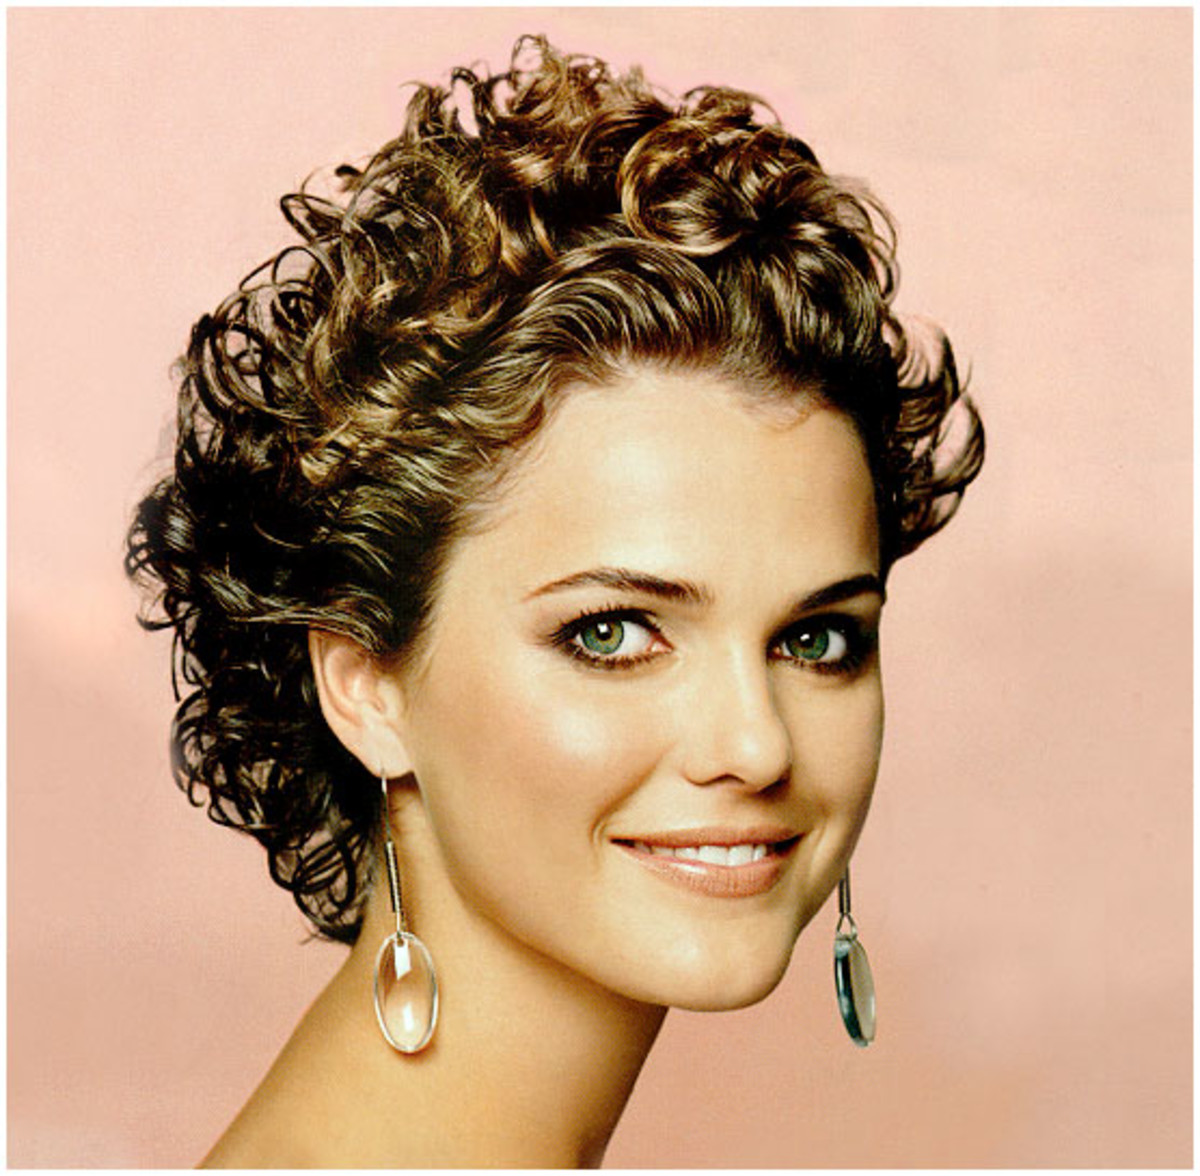 Cute Hairstyles For Curly Hair, Long Hairstyle 2011, Hairstyle 2011, New Long Hairstyle 2011, Celebrity Long Hairstyles 2046